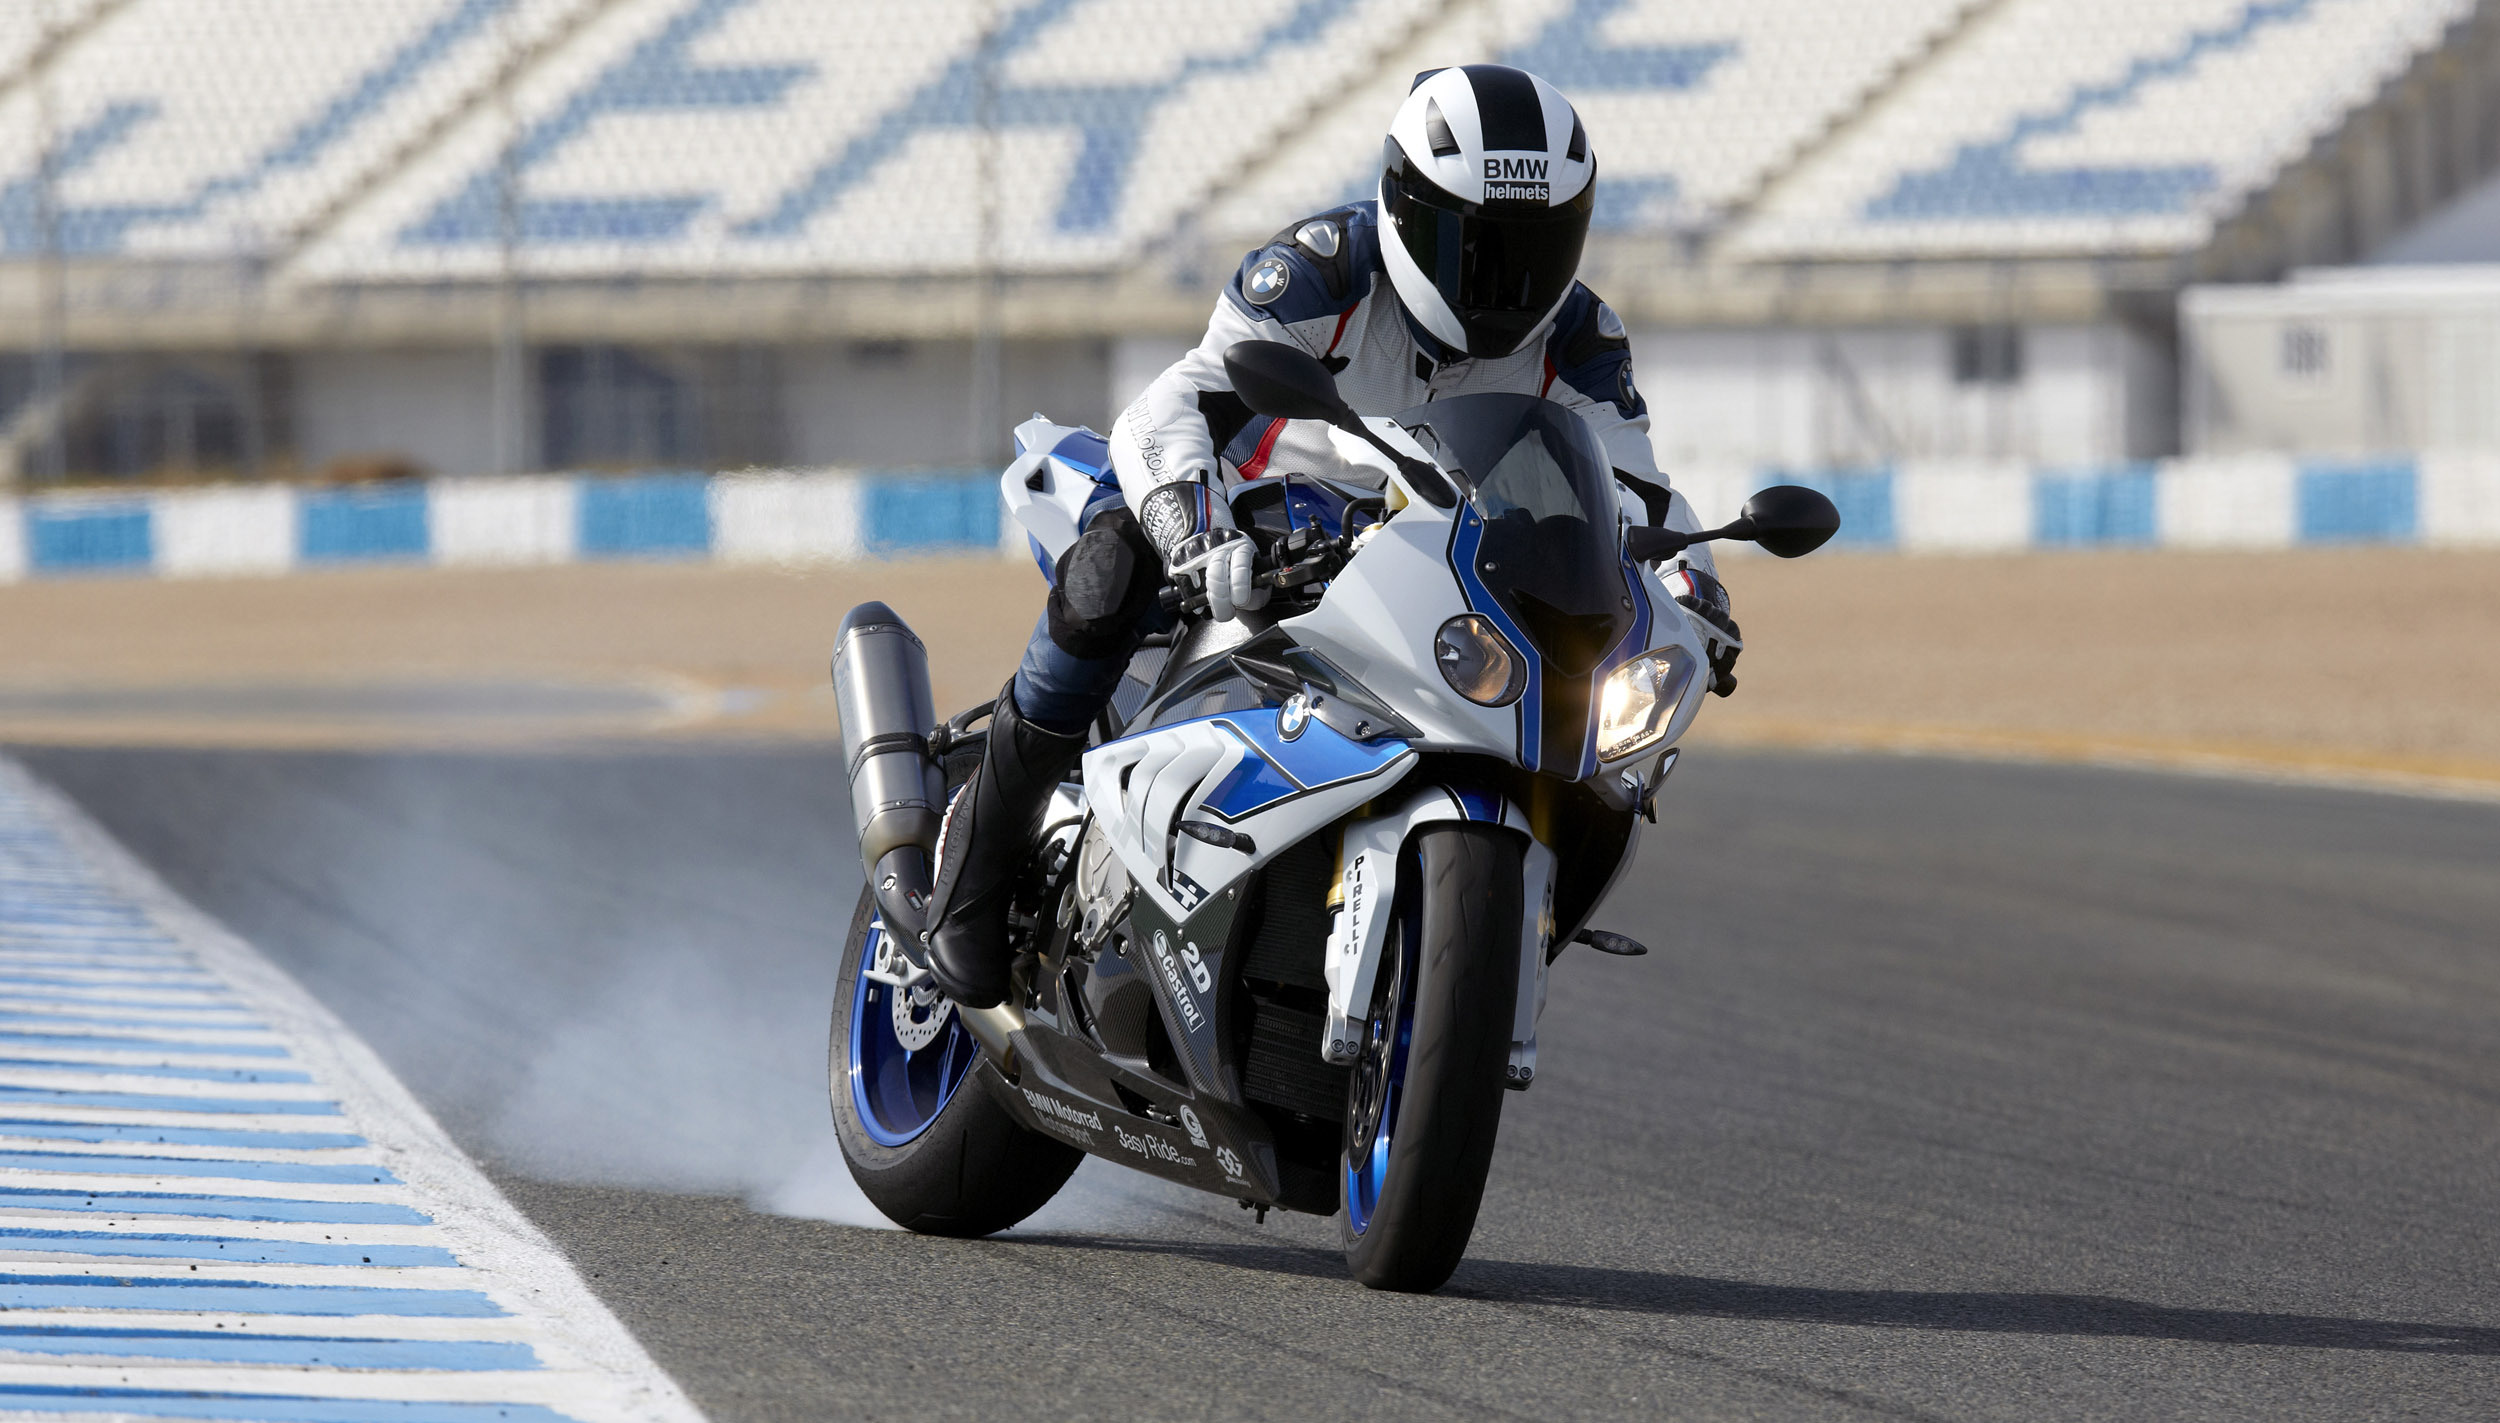 Tvs Bmw Bikes To Be Launched Around August 15 Shifting Gears